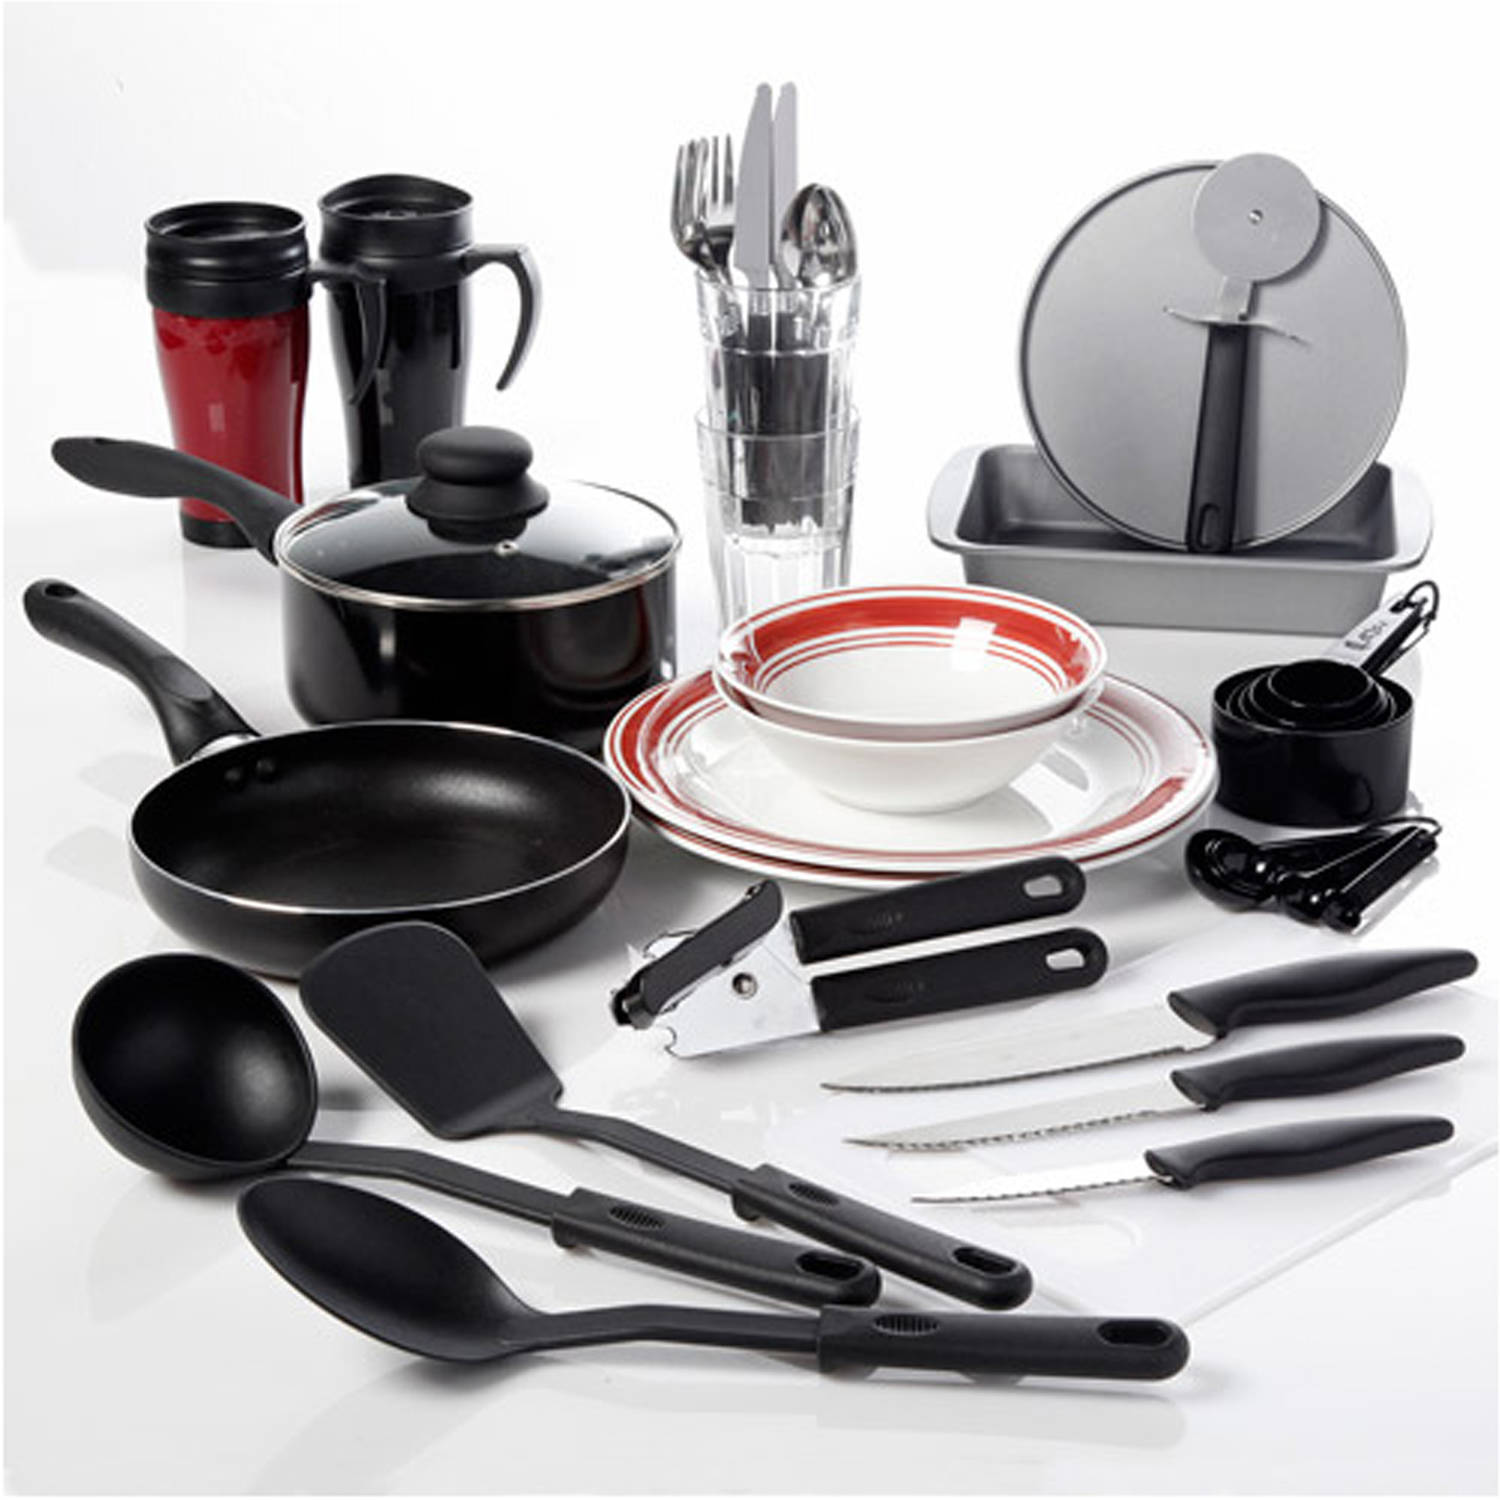 gibson home dorm kitchen 38-pc. combo set